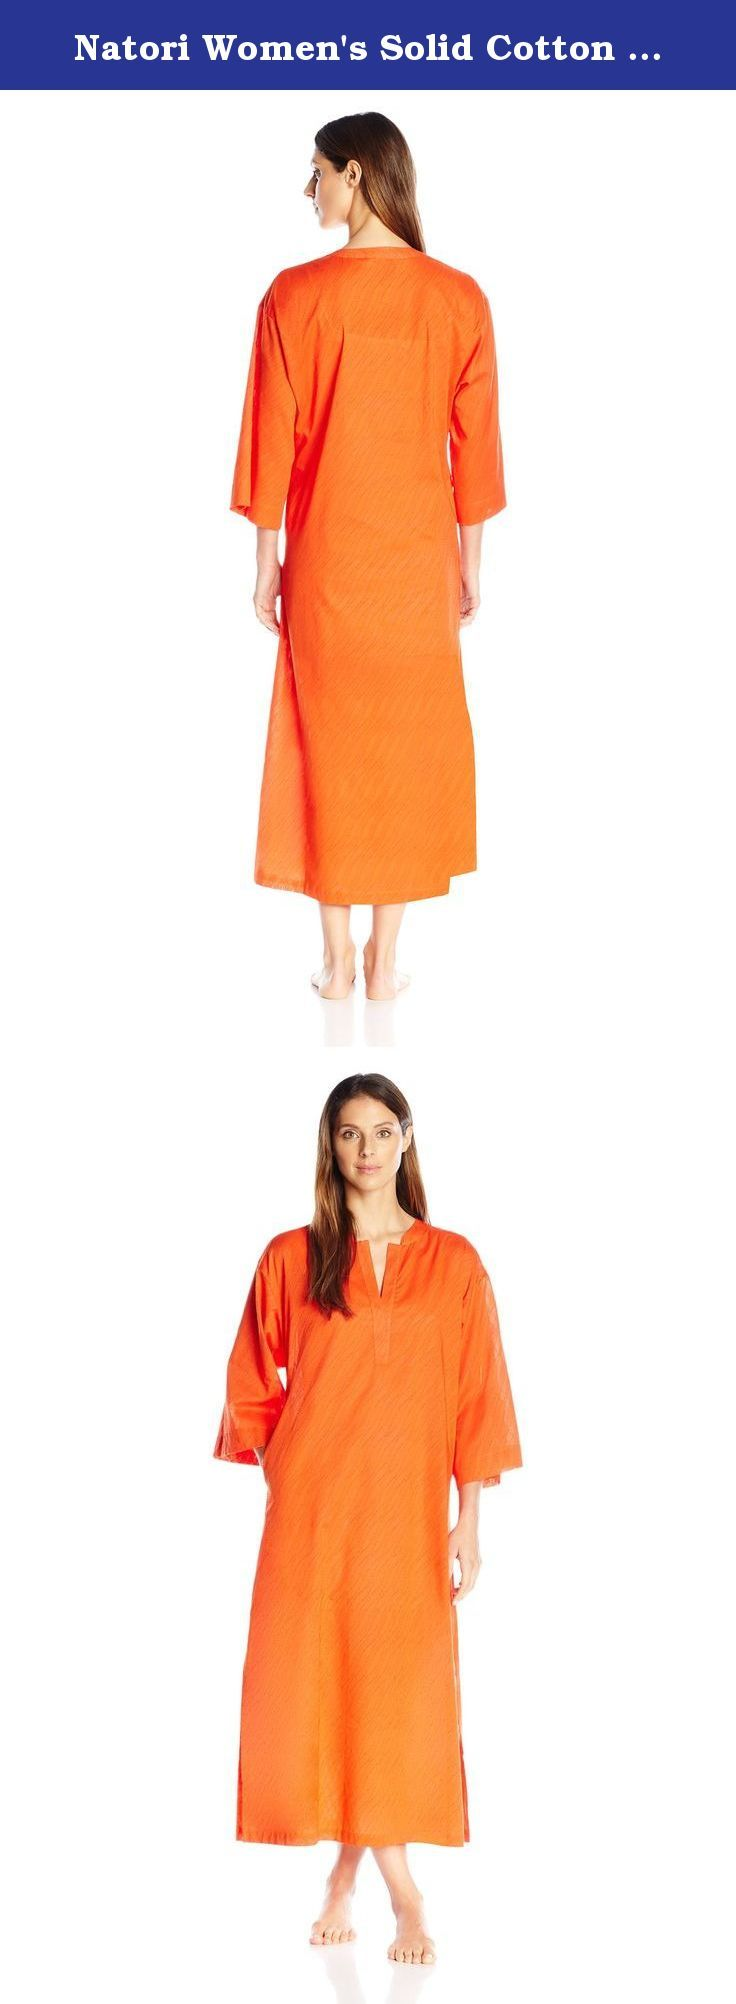 Natori Women's Solid Cotton Texture Lounger, Sedona, X-Large. Solid cotton caftan with textured surface perfect for any lifestyle.